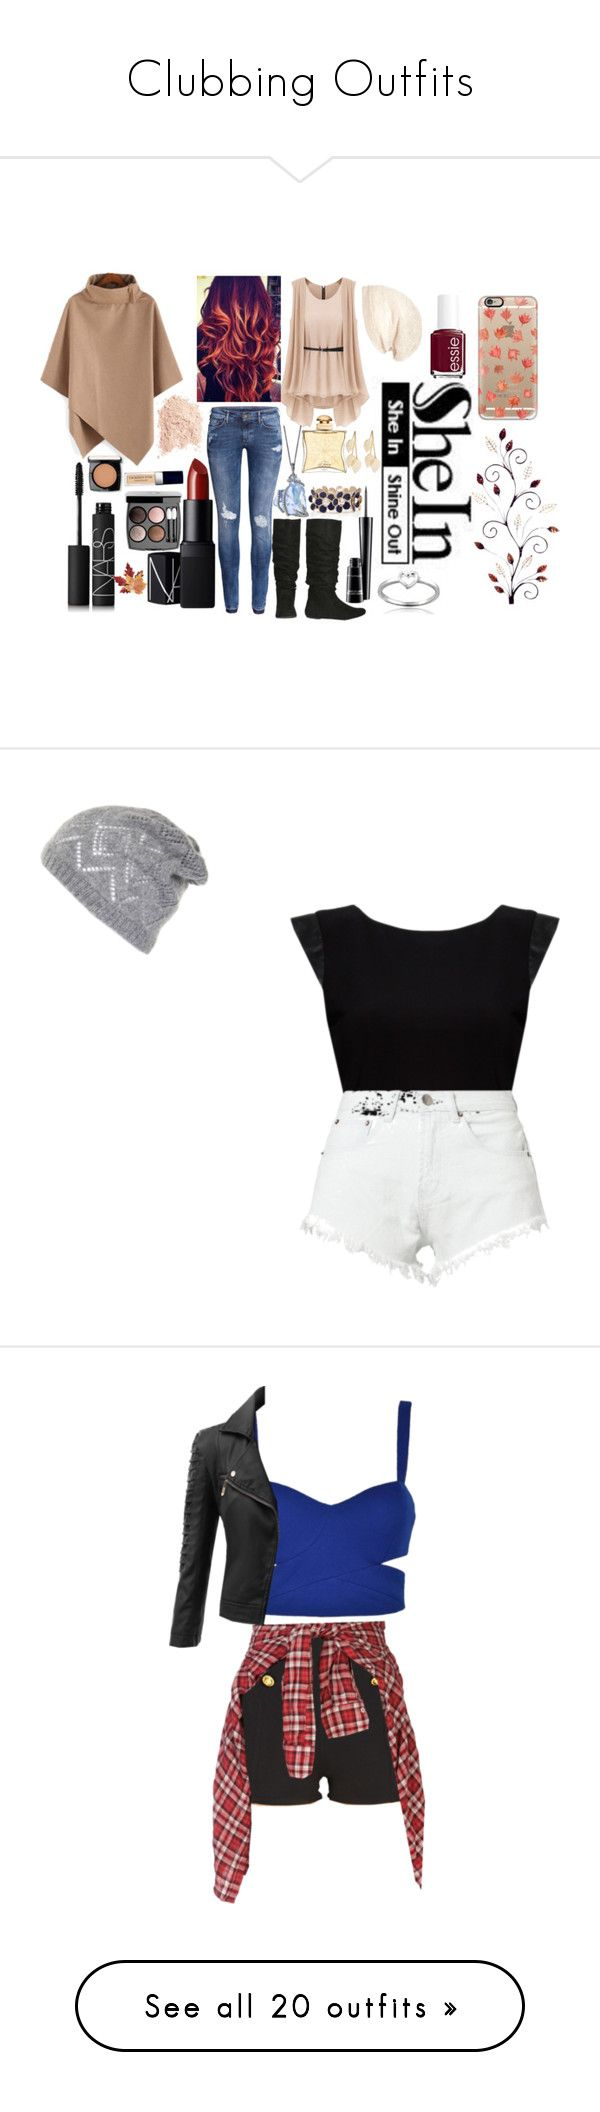 """""""Clubbing Outfits"""" by redheadmahomiemidnightredaustin ❤ liked on Polyvore featuring H&M, Wet Seal, Cara, NARS Cosmetics, Hermès, Chanel, MAC Cosmetics, Lancôme, Essie and Christian Dior"""